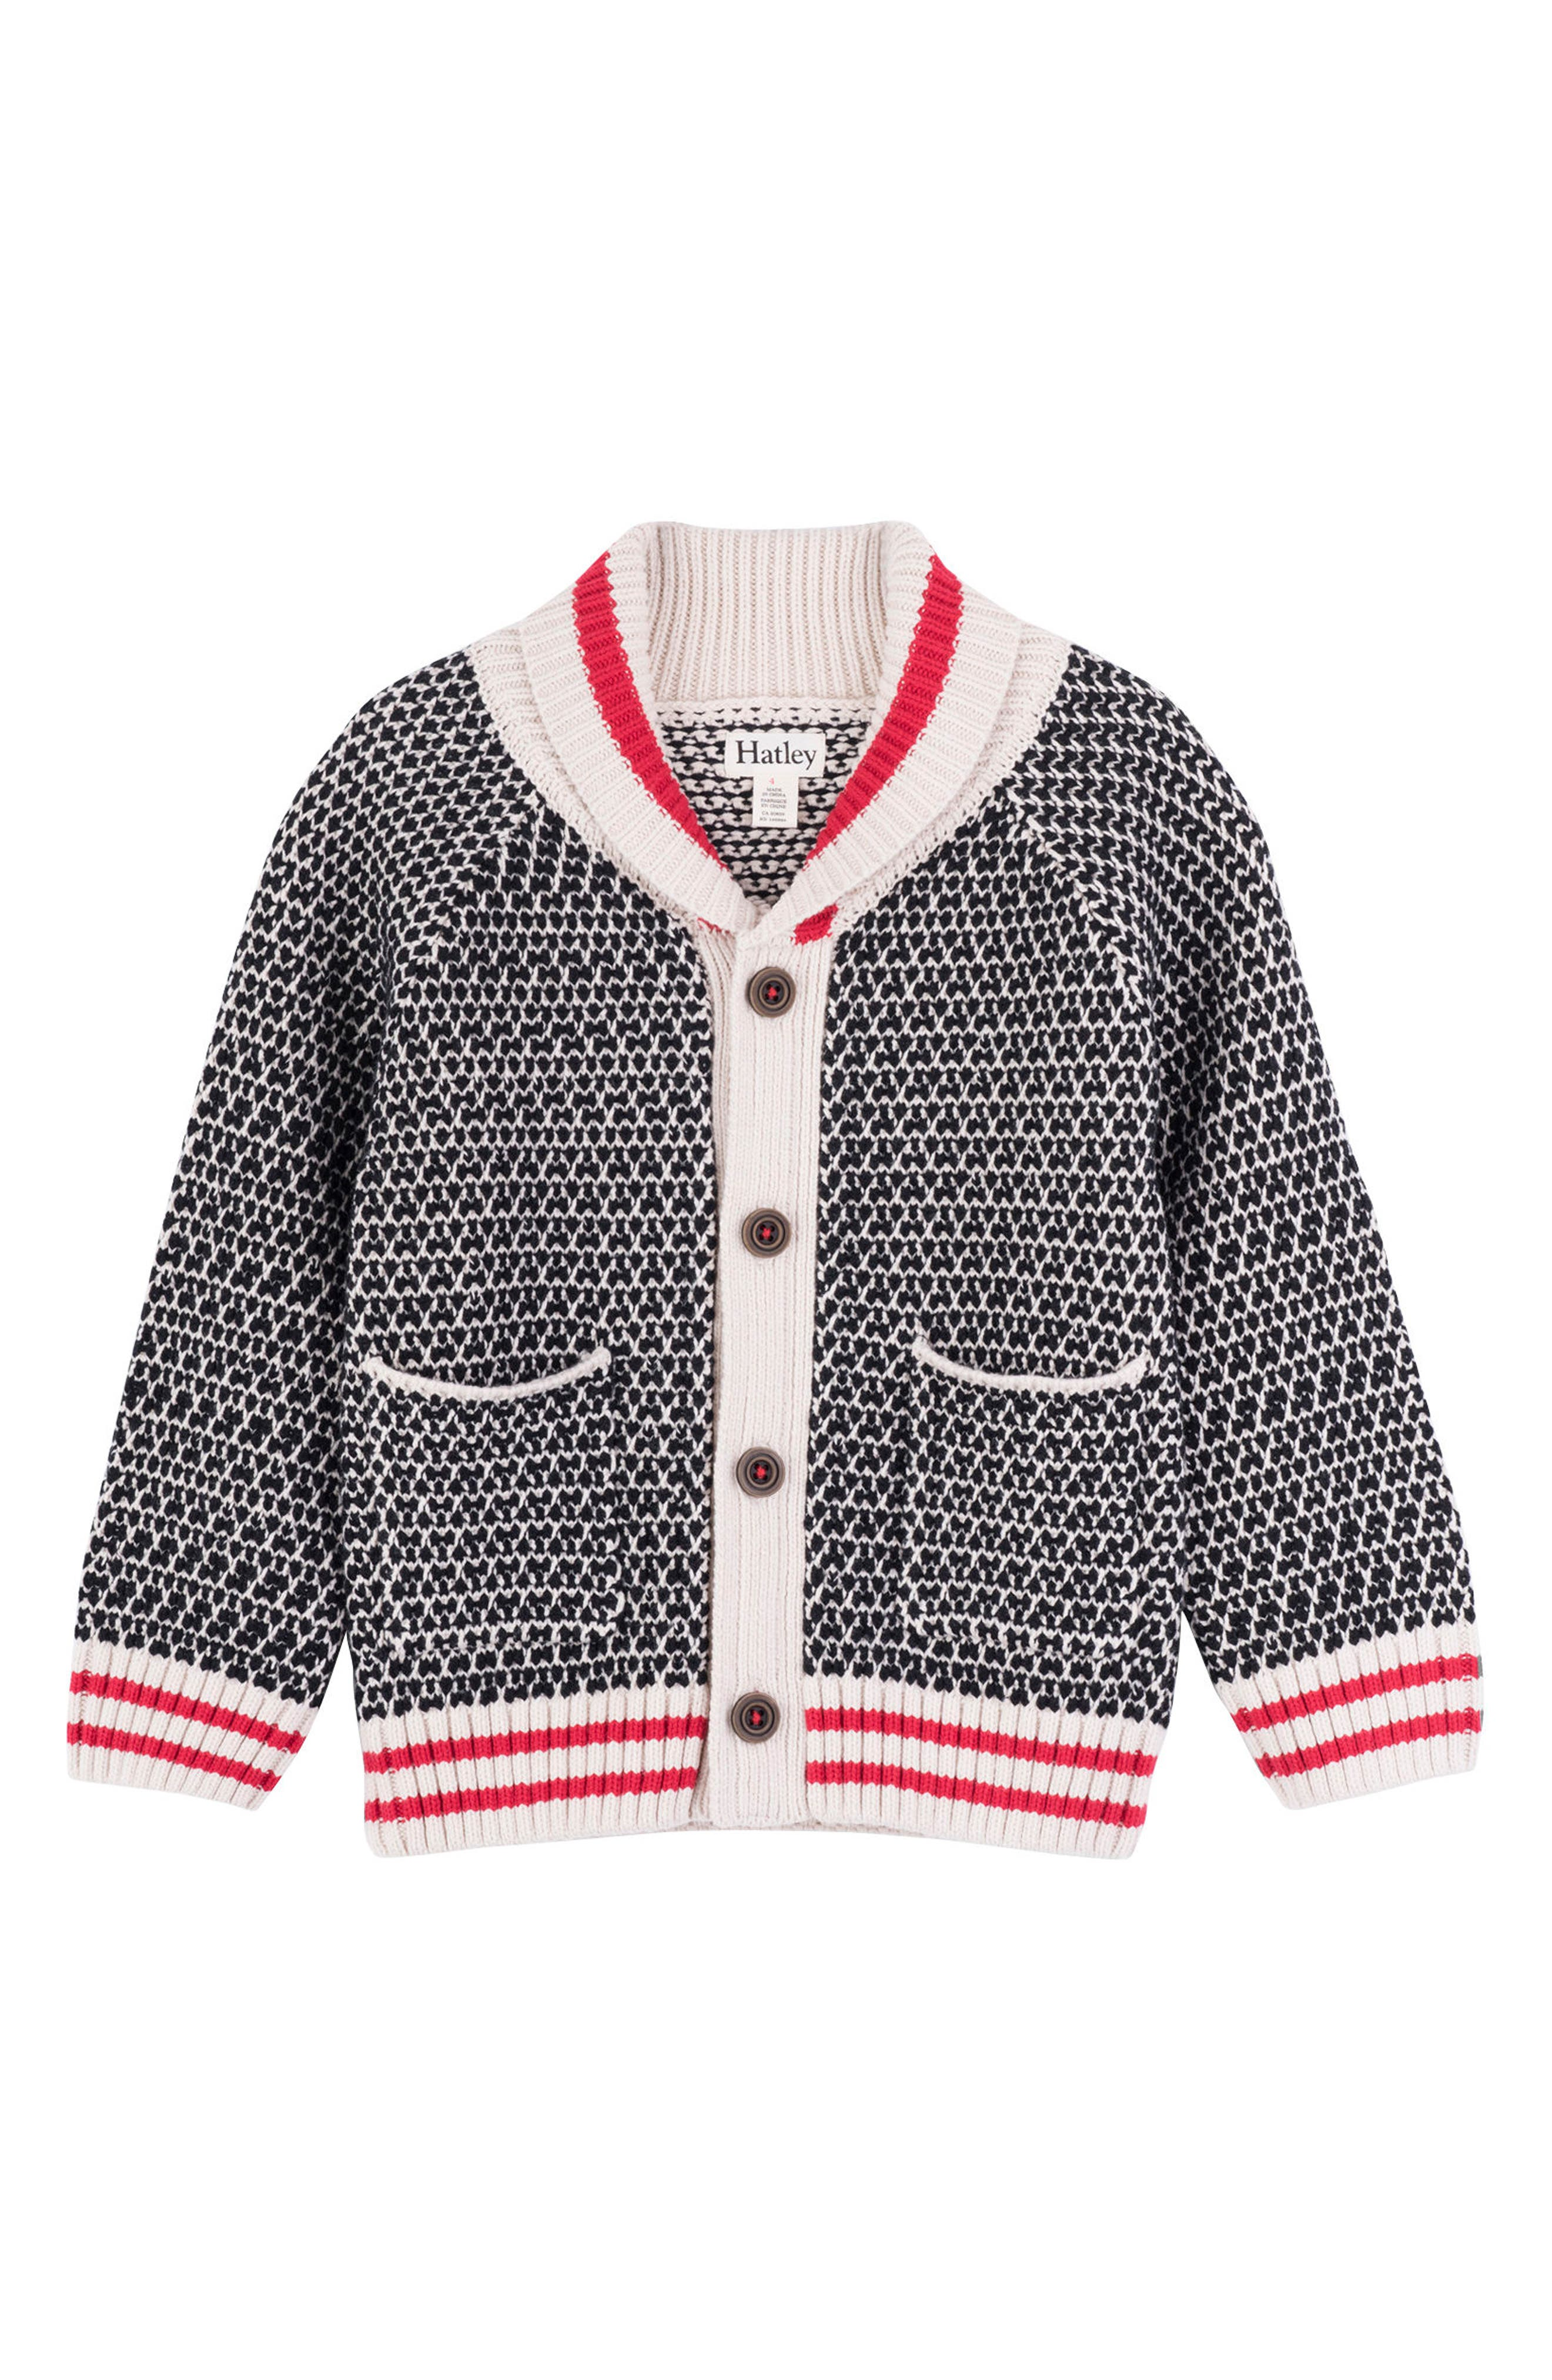 HATLEY, Shawl Collar Cardigan, Main thumbnail 1, color, 020